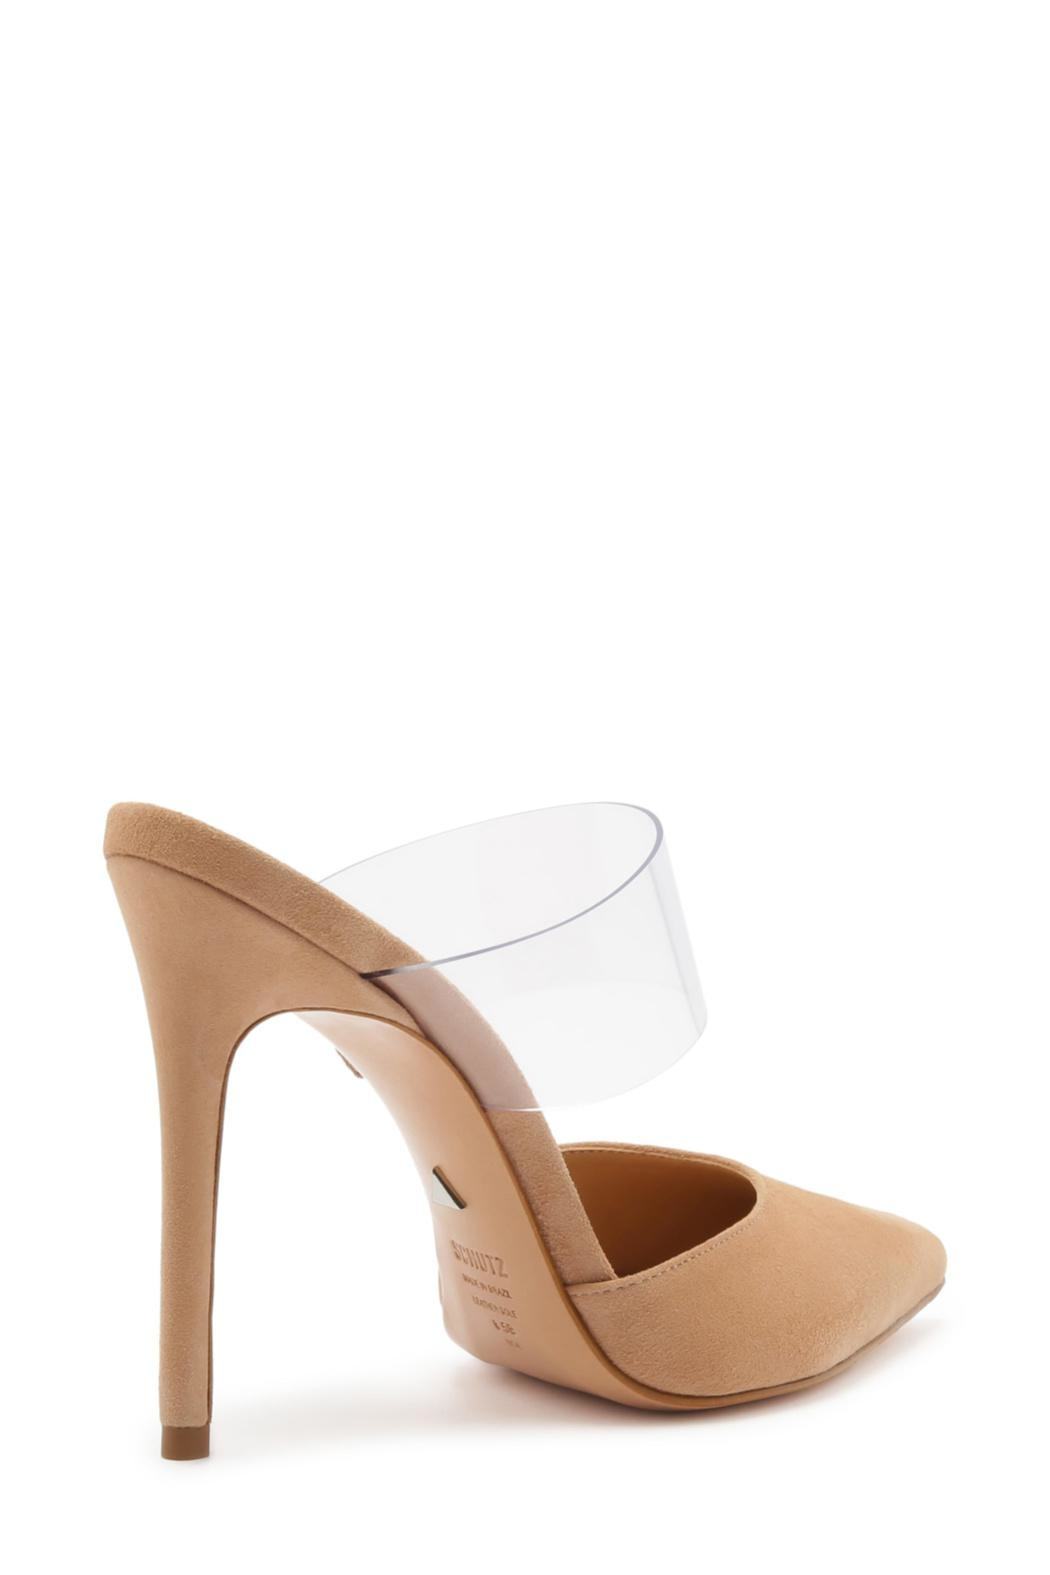 Schutz Sionne Suede Mule - Front Full Image